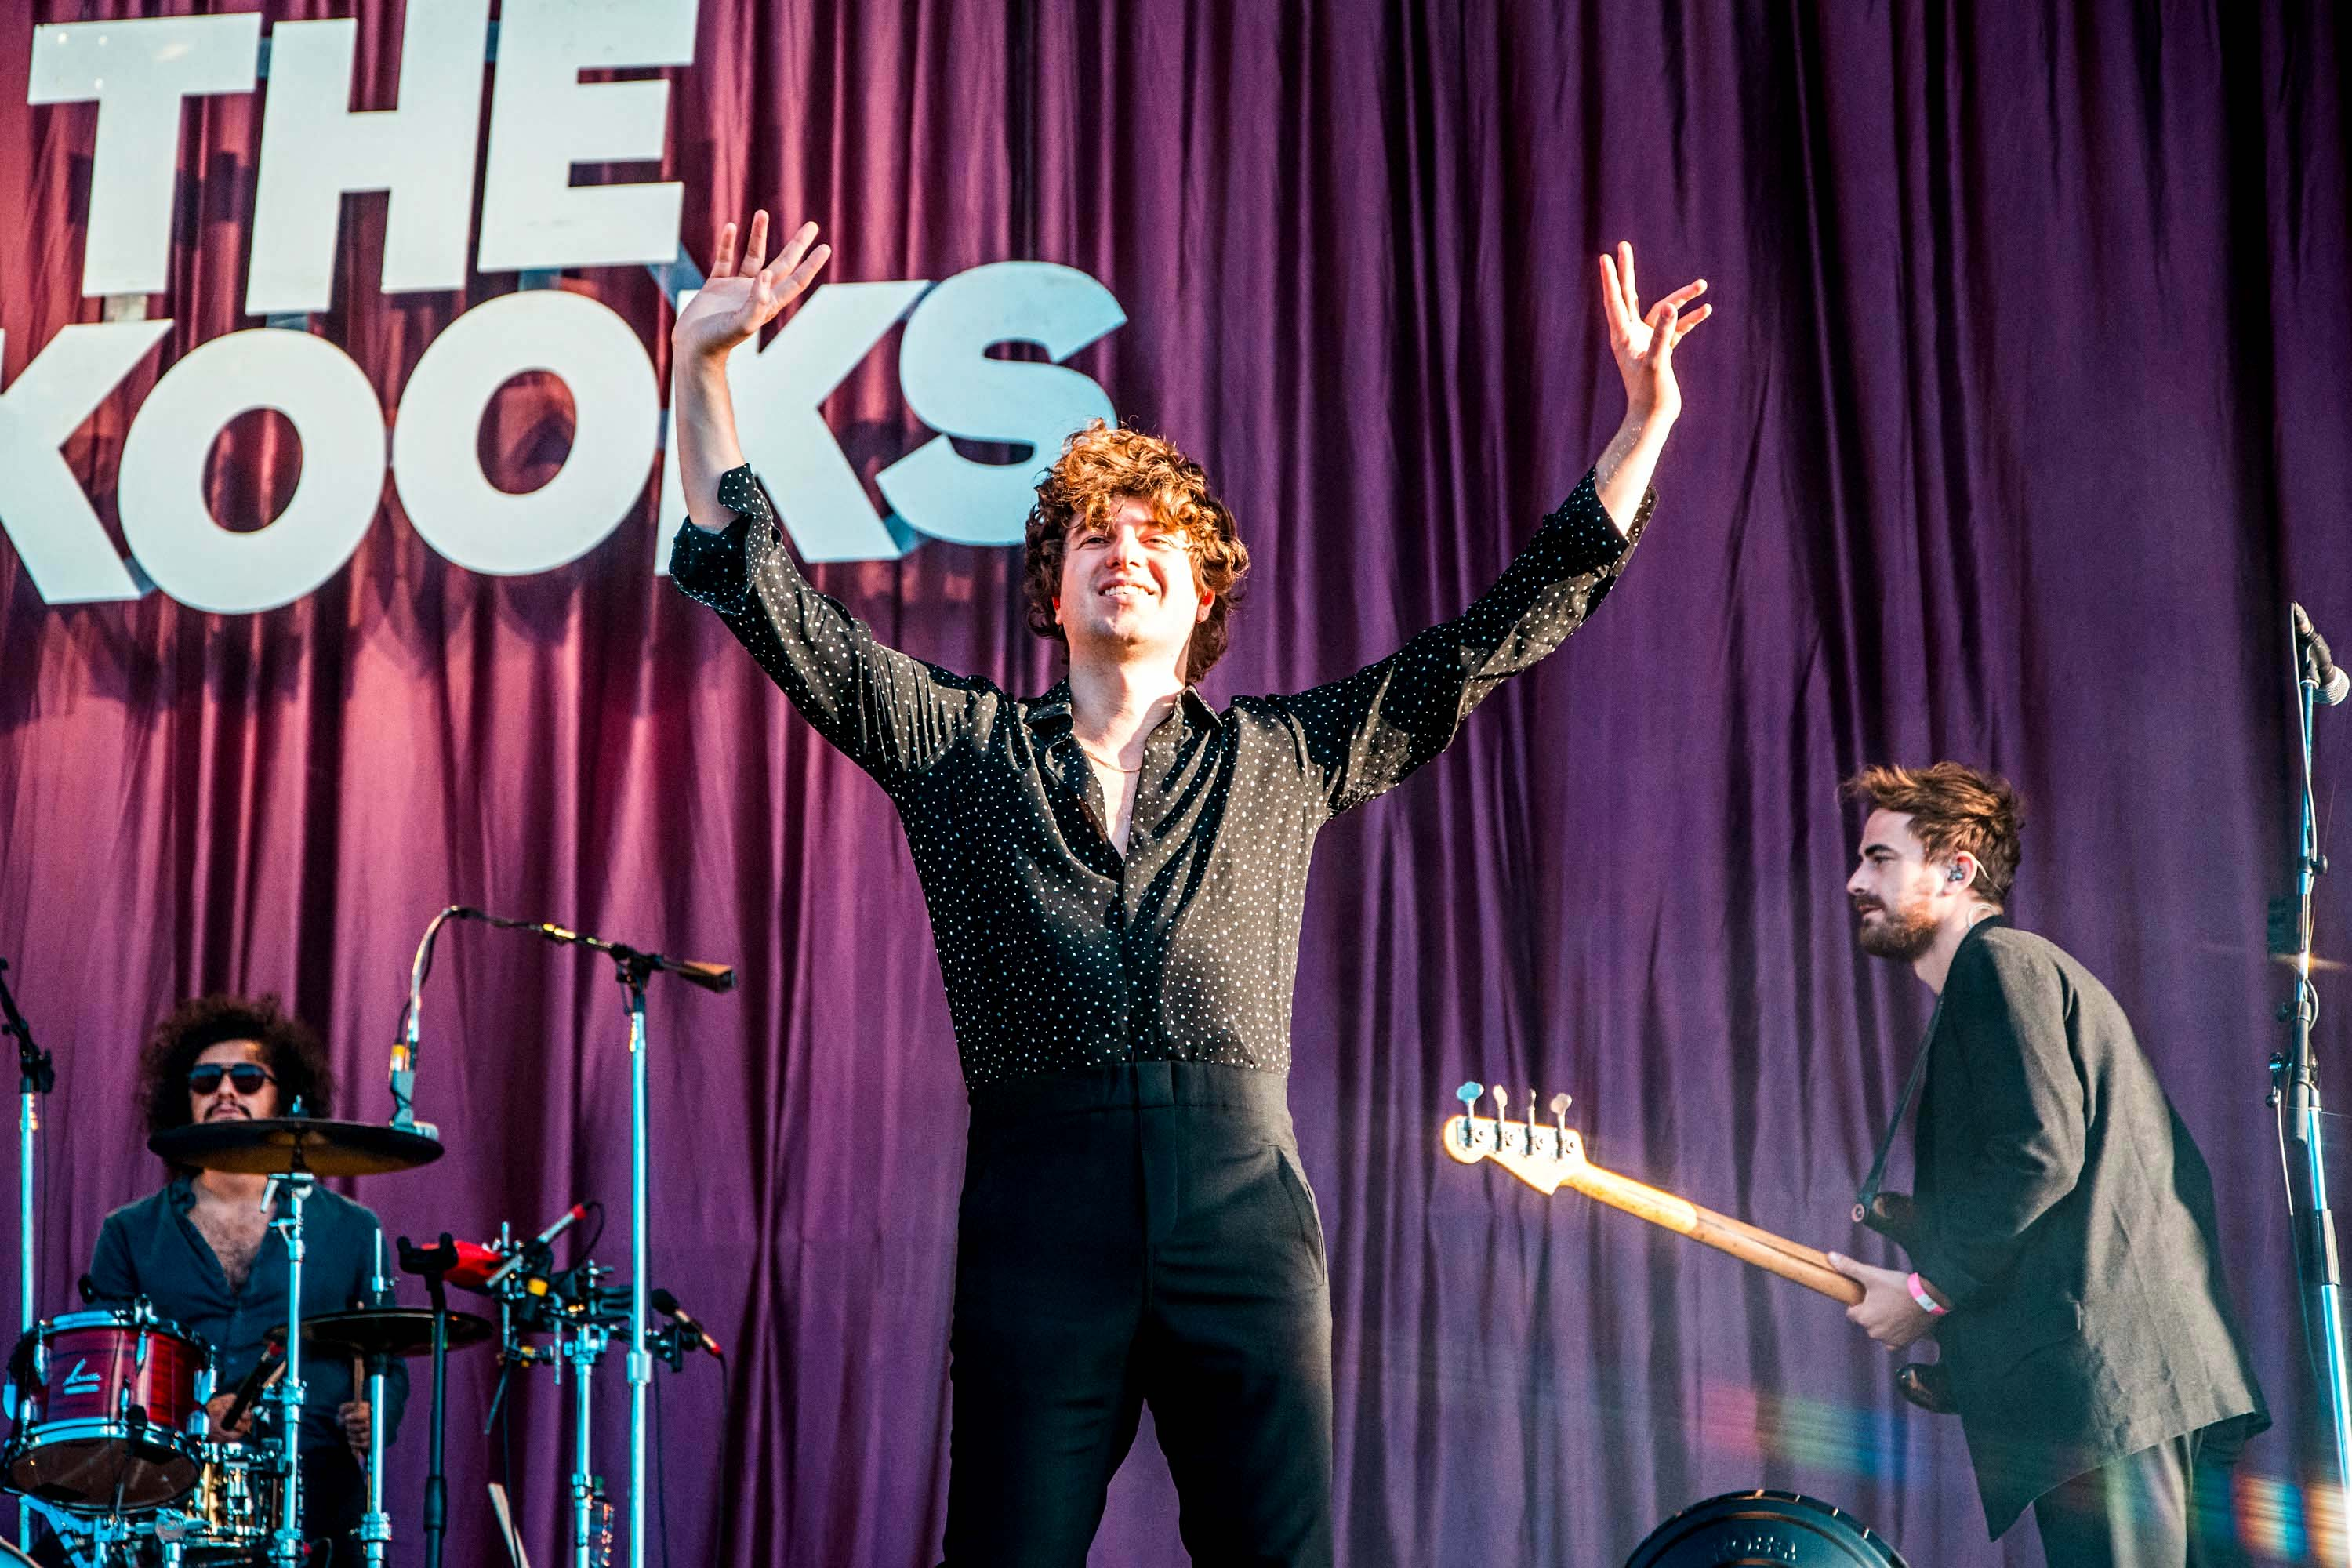 The Kooks - Community Festival 2019 - GIG GOER